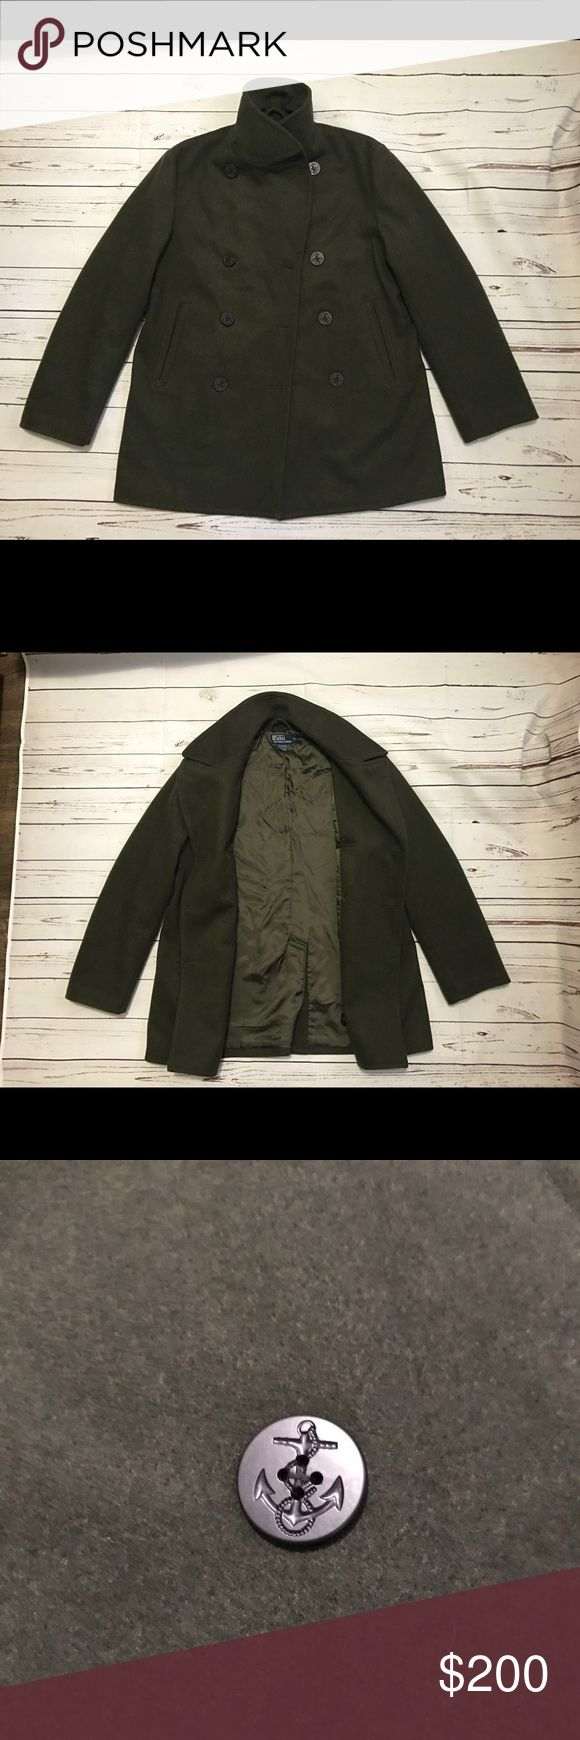 Polo Ralph Lauren Wool Peacoat Amazing peacoat by Ralph Lauren. Great Condition, no rips, holes, or stains. Retailed at Bloomingdales for around $4-500 I believe. Such a great deal Polo by Ralph Lauren Jackets & Coats Pea Coats